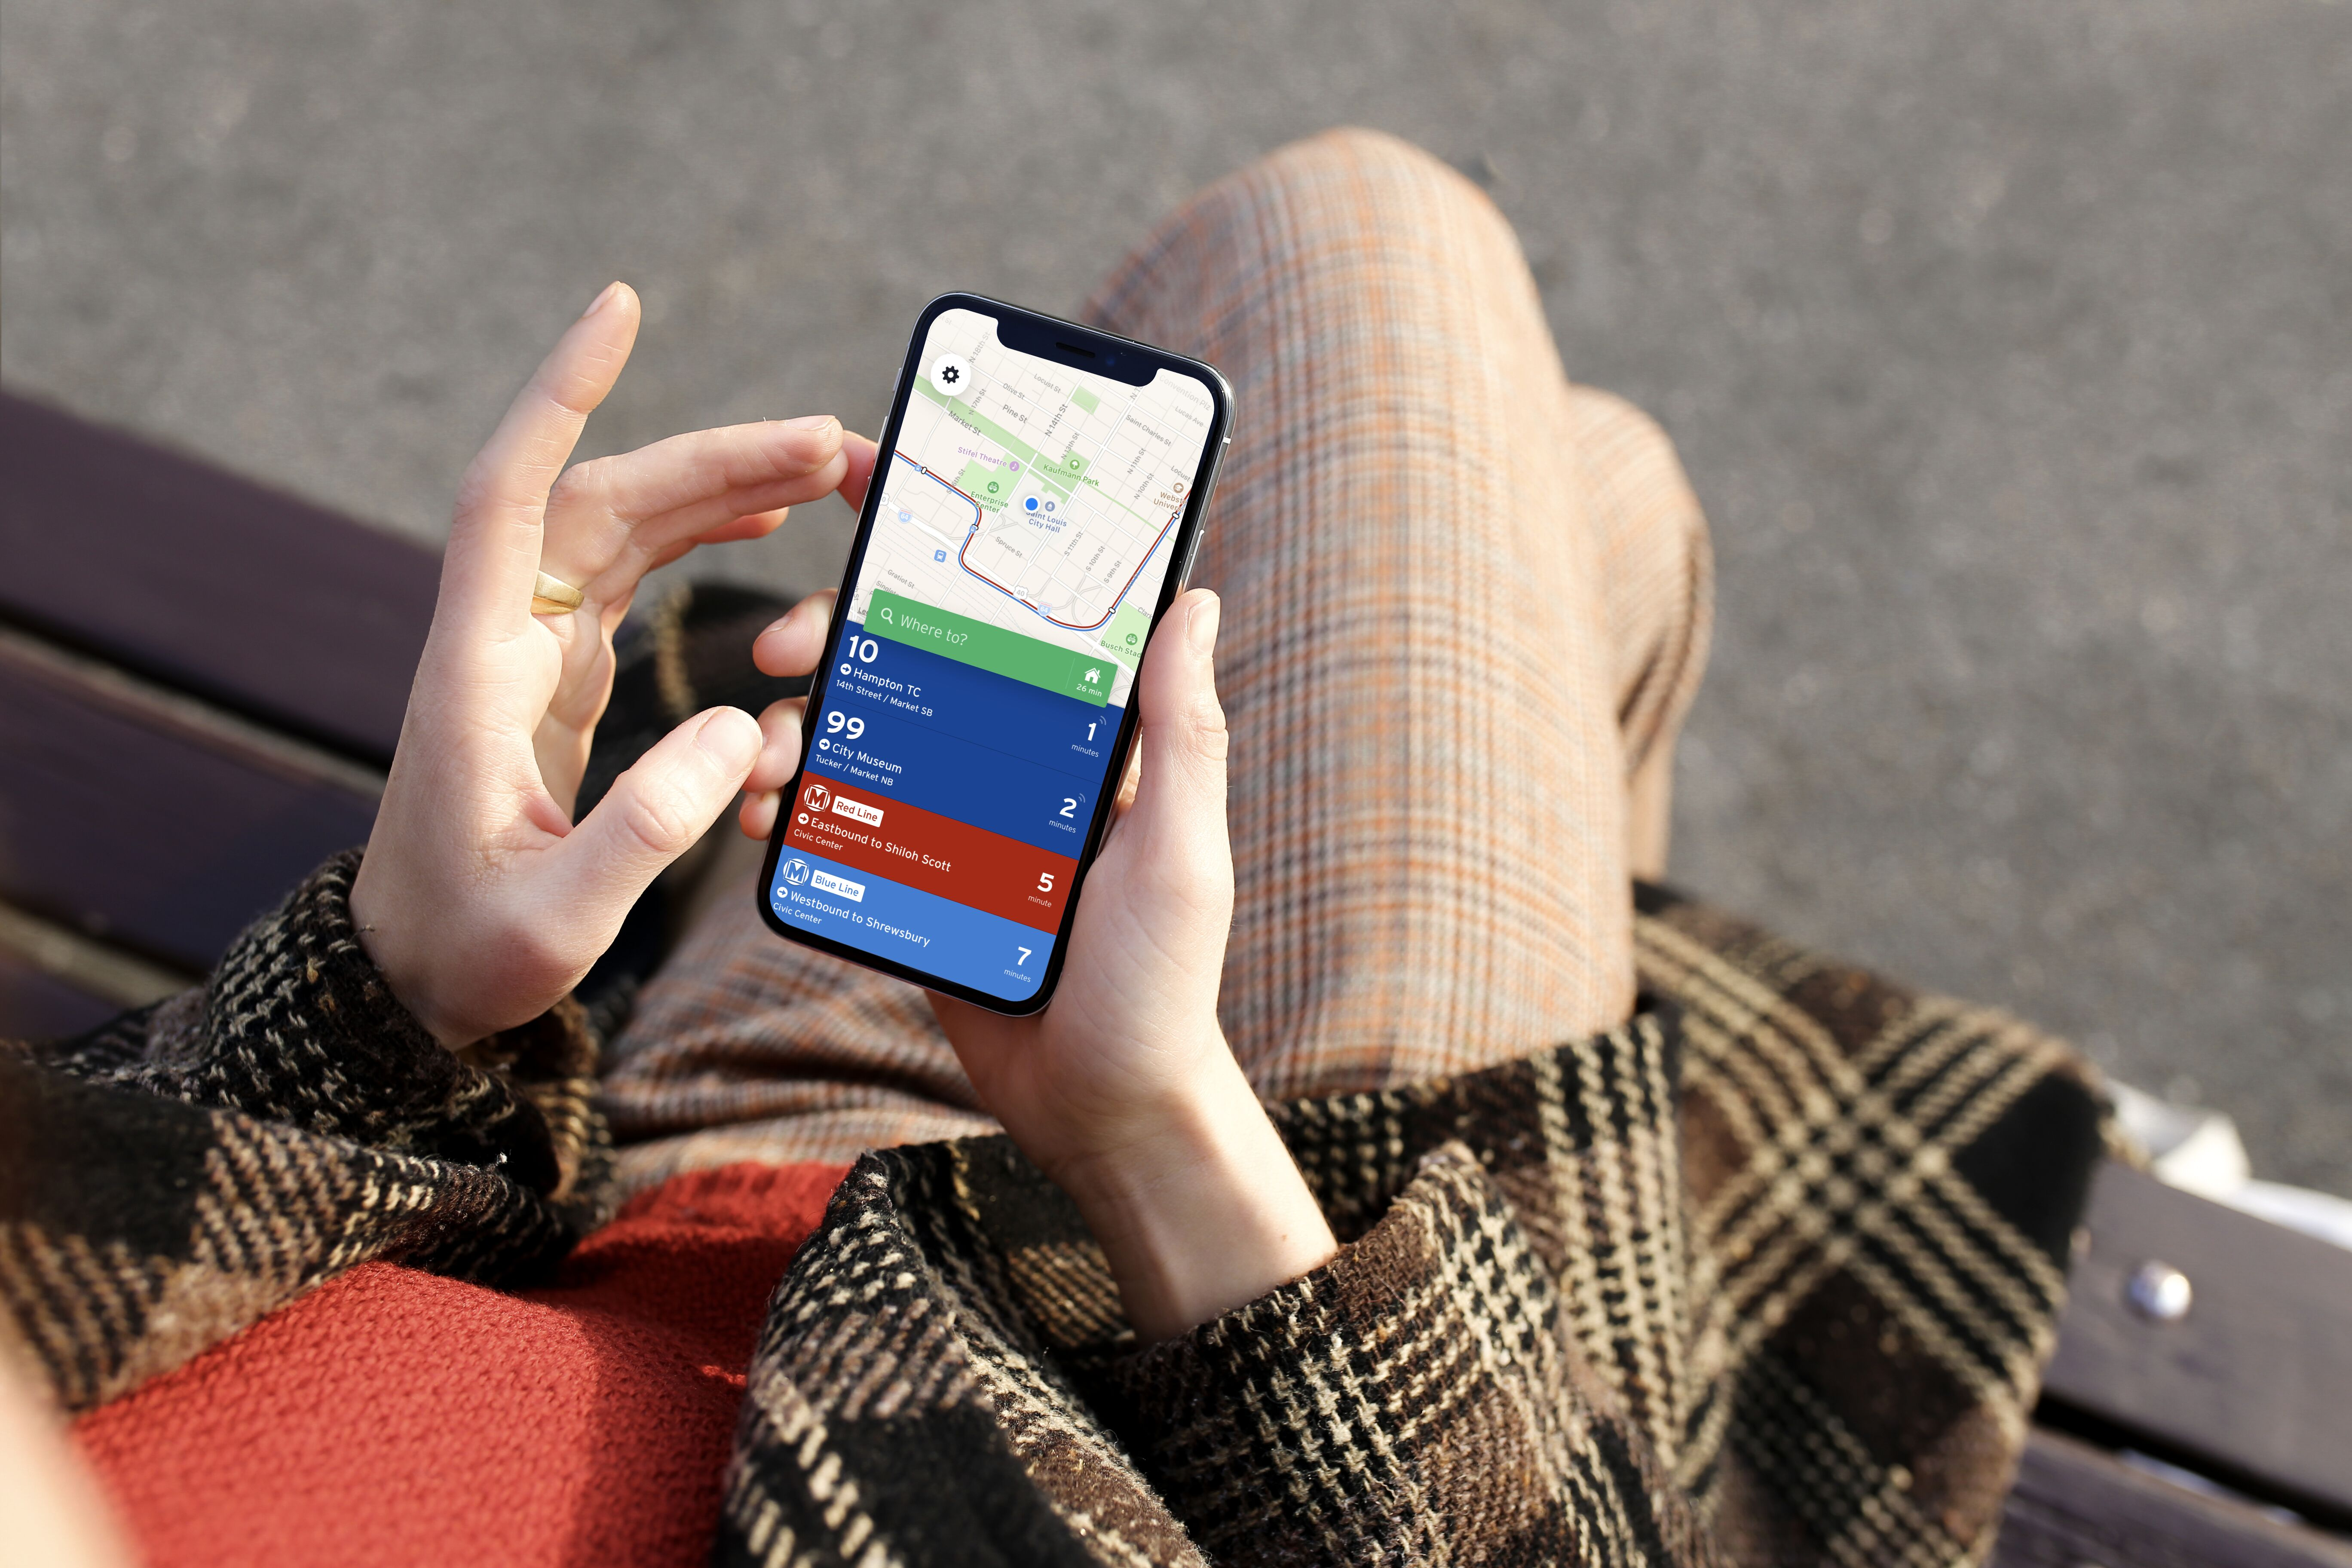 Metro Transit announces new official app – Clayton Times